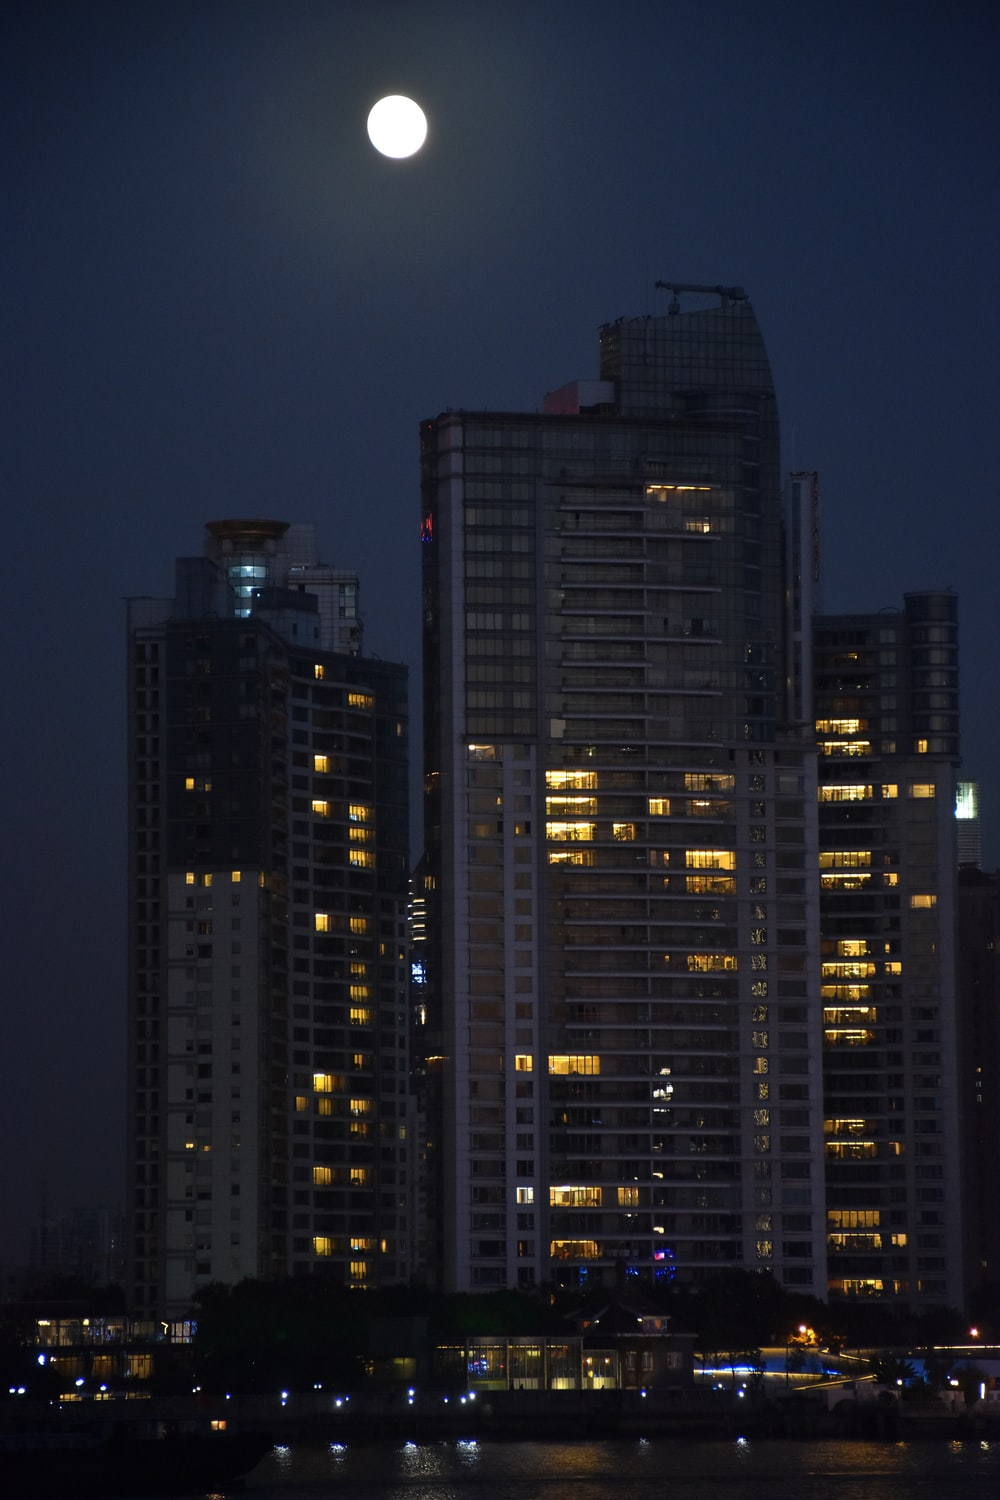 view photography of high rise buildings during nighttime with full moon